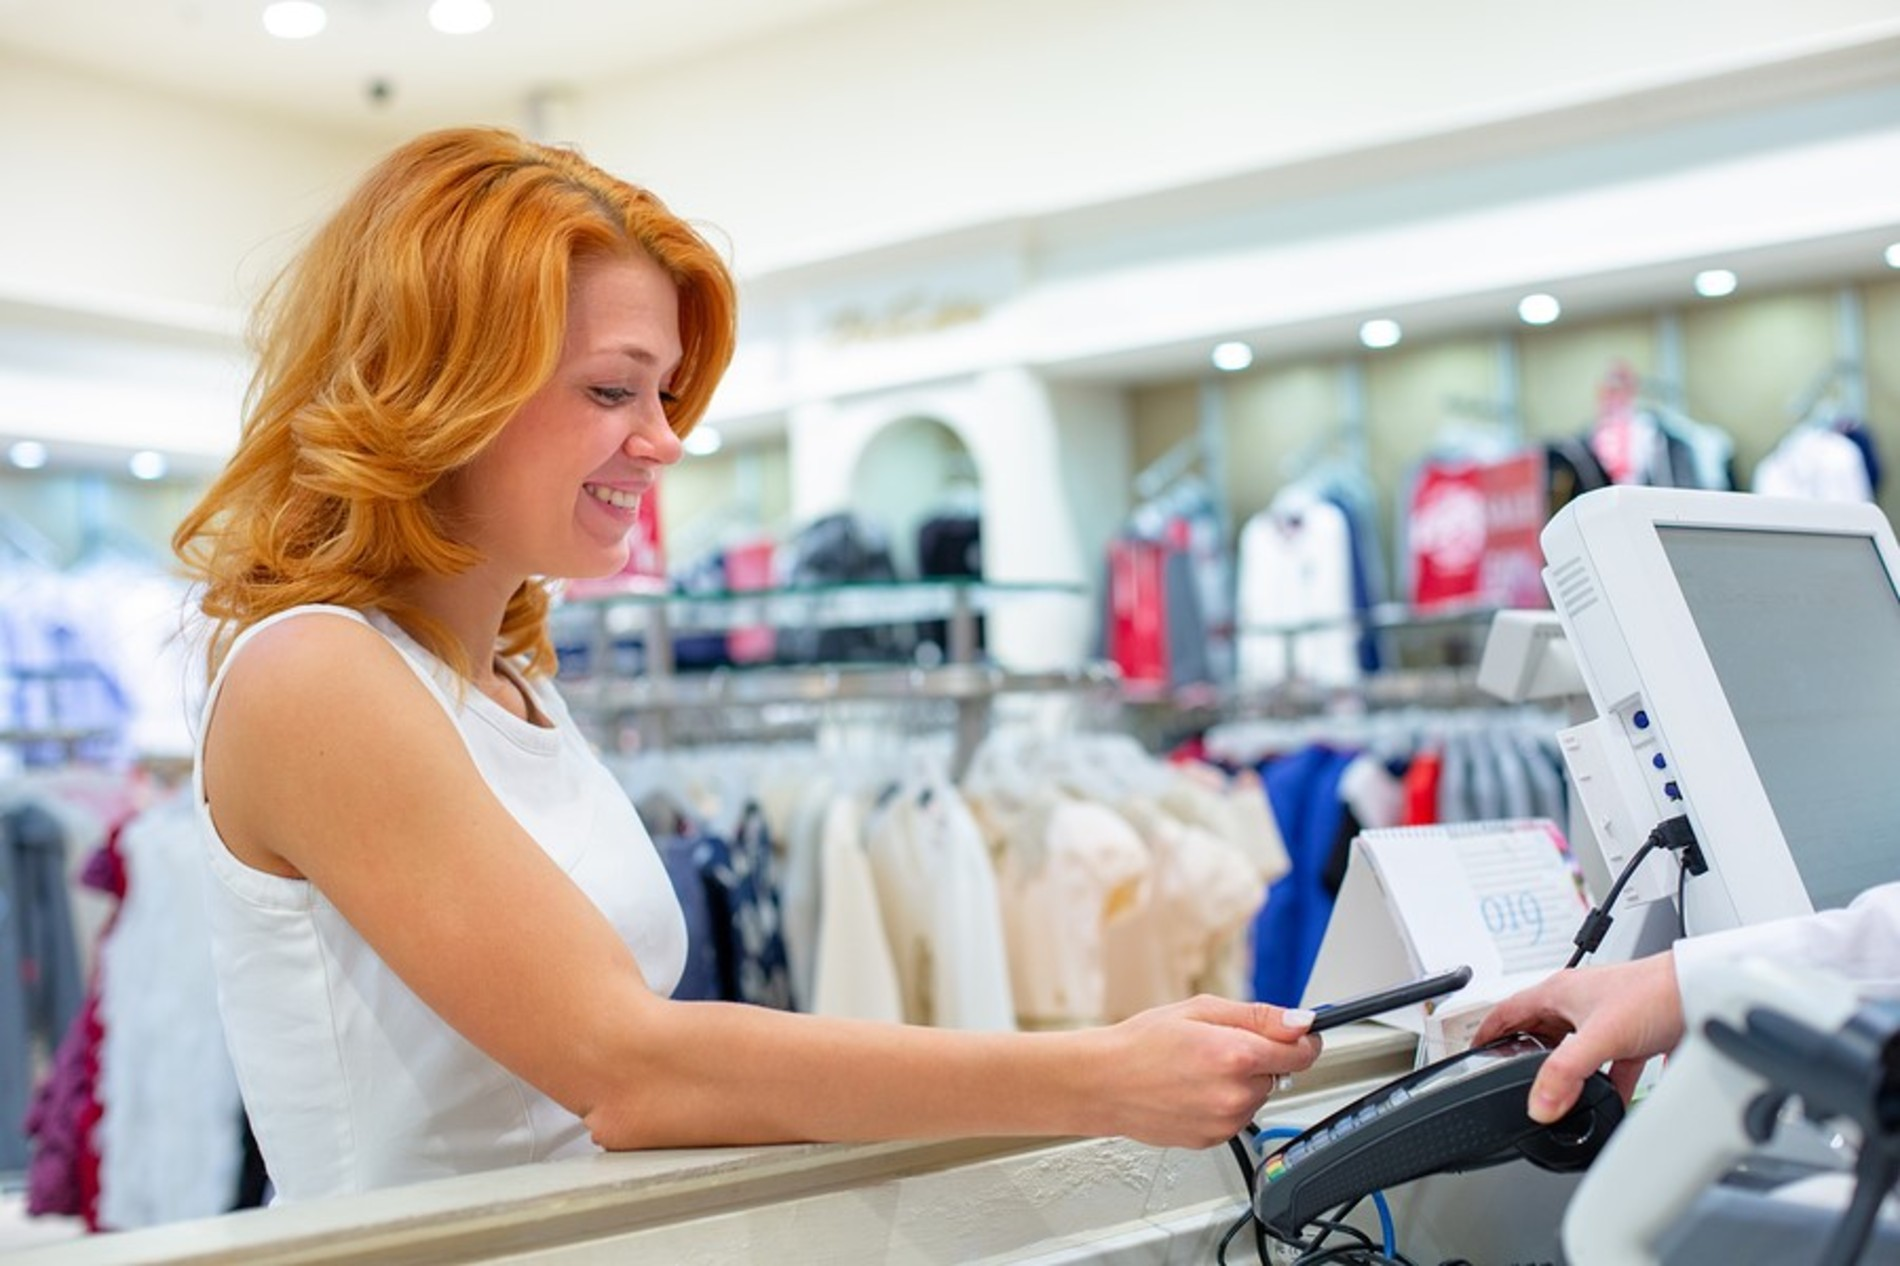 Smiling woman paying for clothing purchase at a register.